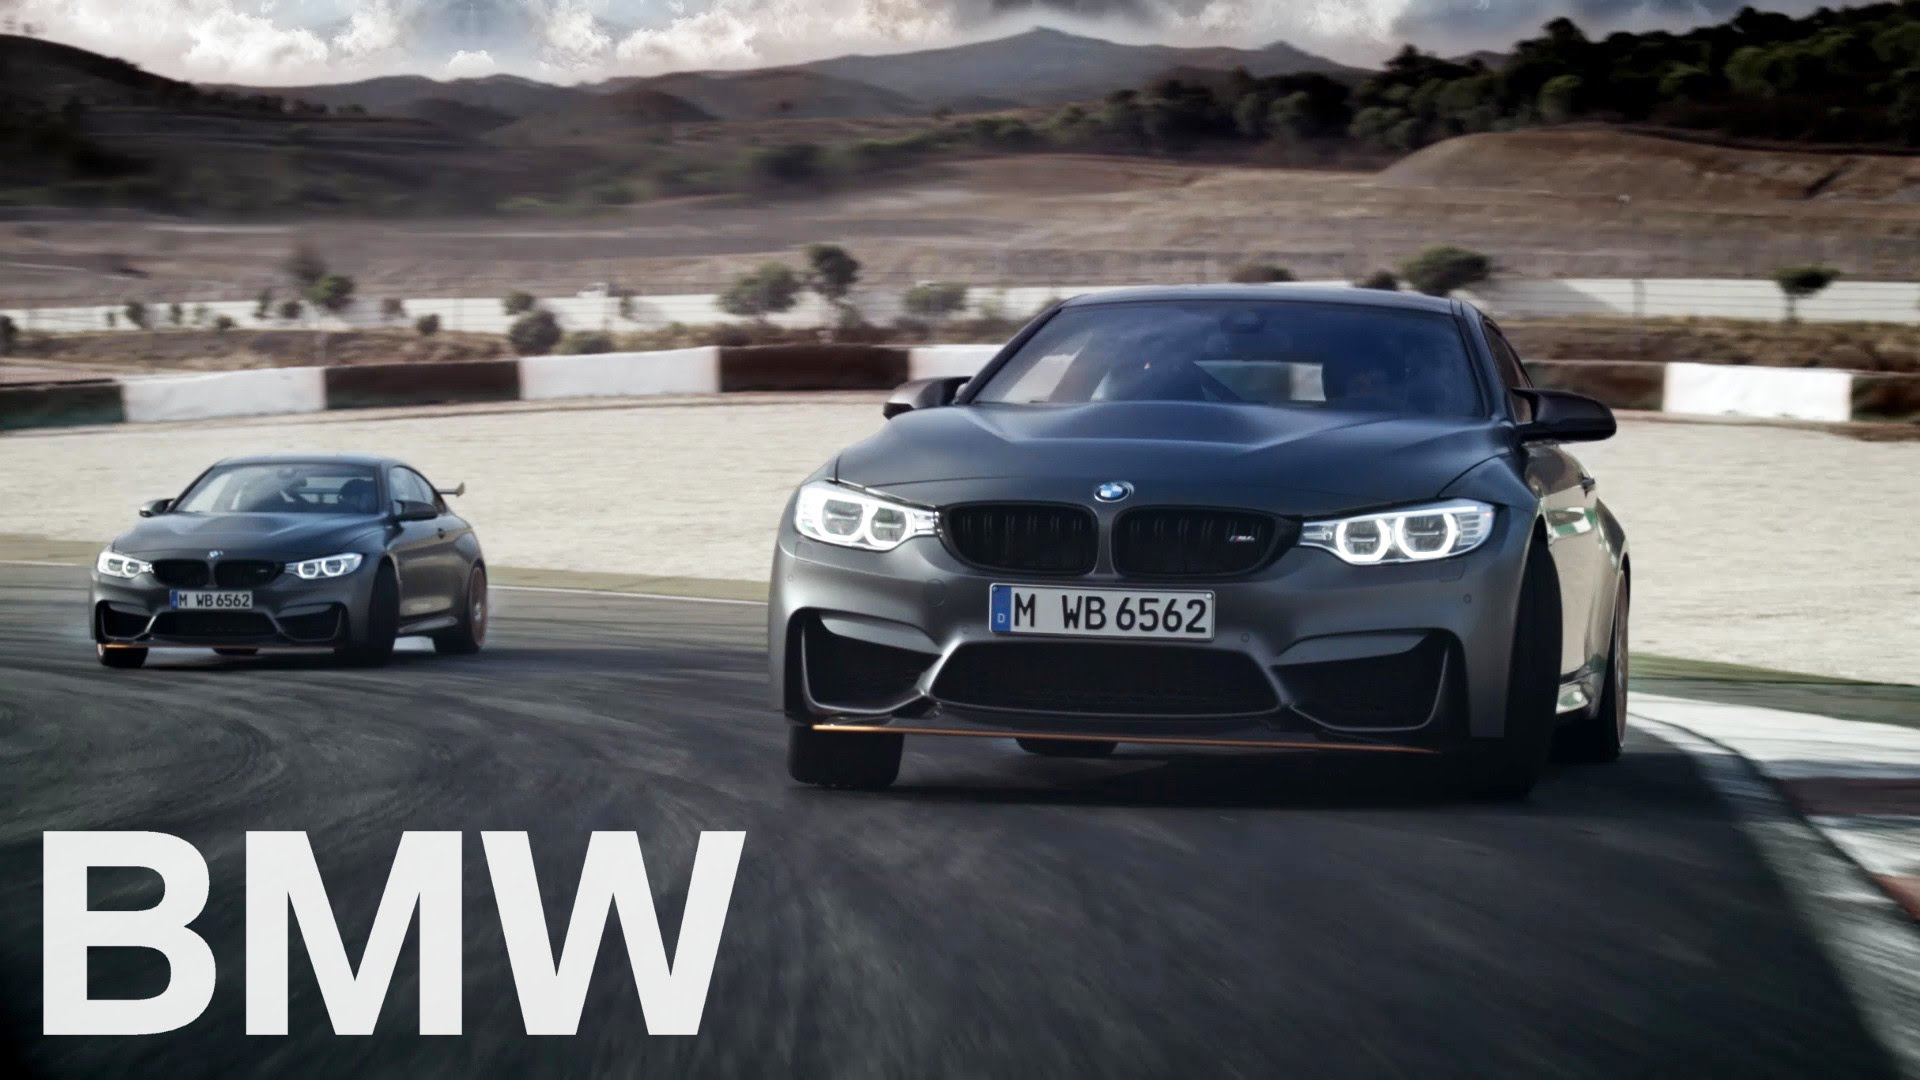 The New 2016 BMW M4 GTS Is Powered With A New Water Injection System That  Helps Boost Power!